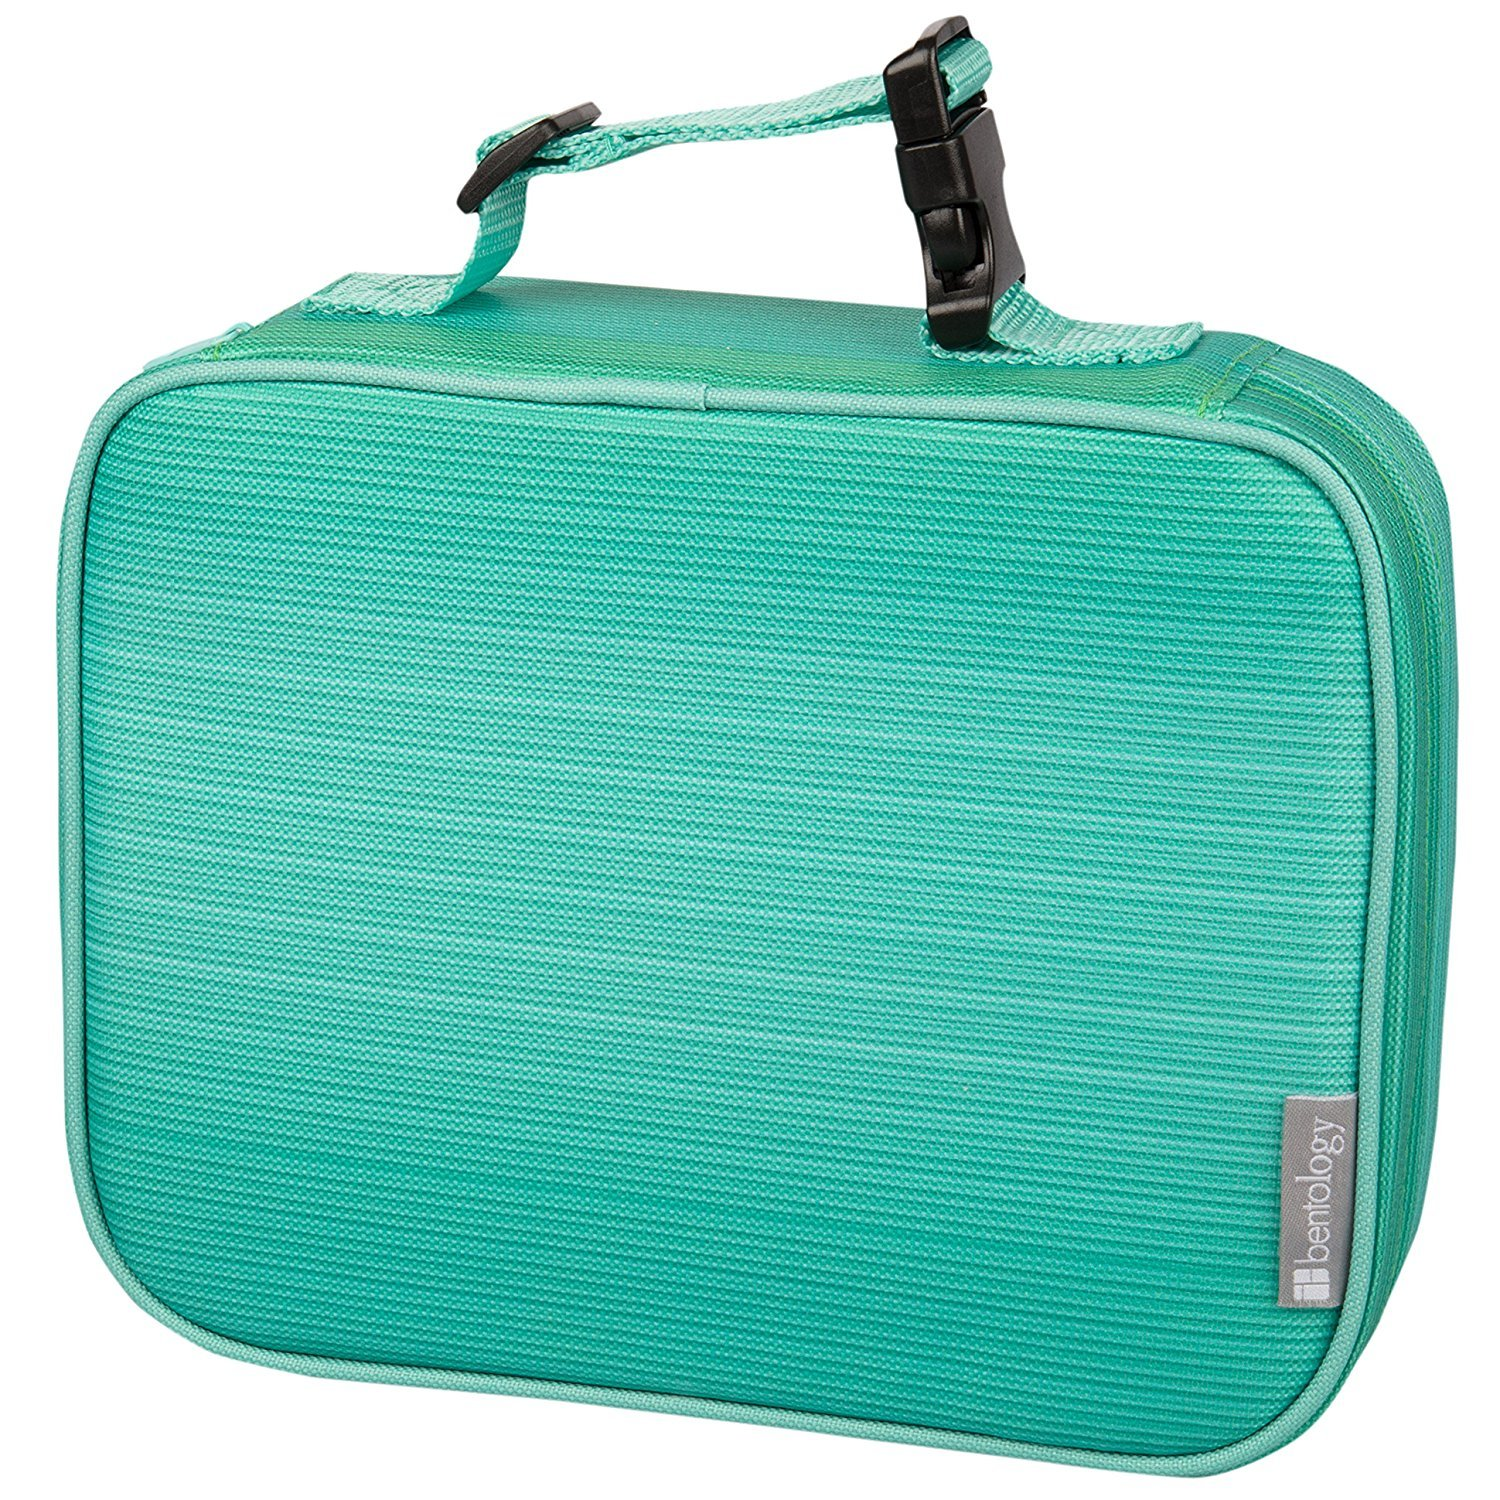 Insulated Lunch Box Sleeve - Securely Cover Your Bento Box - Turquoise